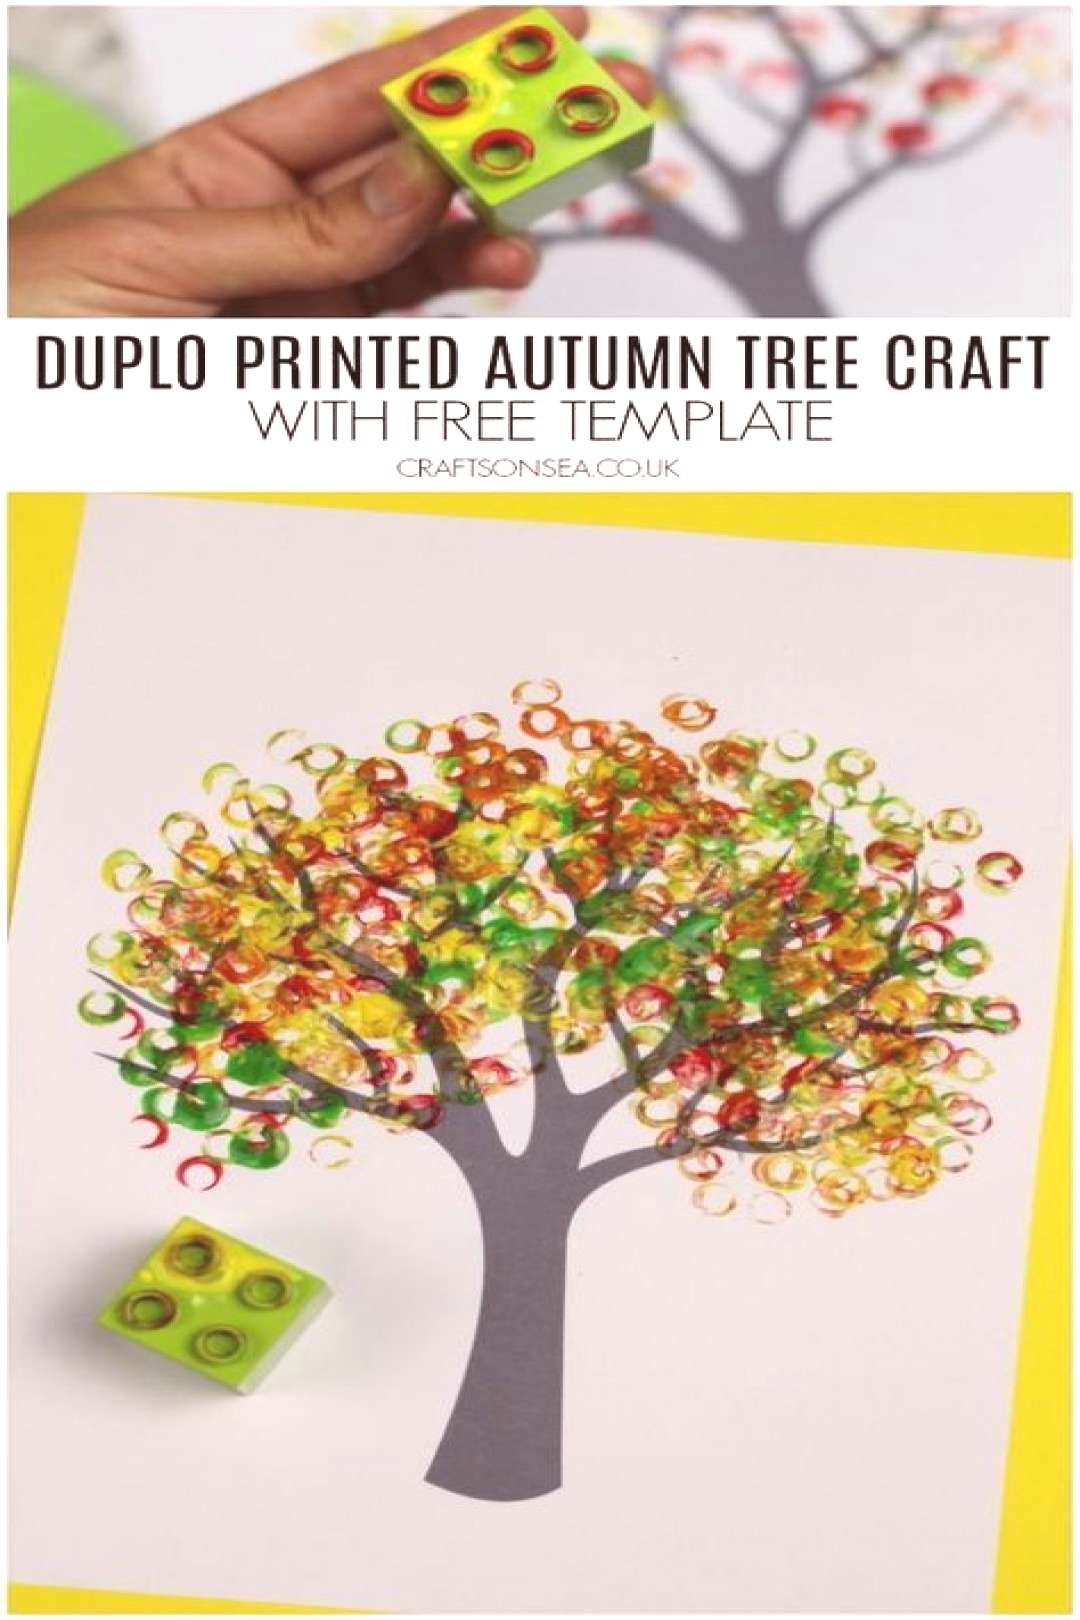 duplo printed autumn tree craft for kids